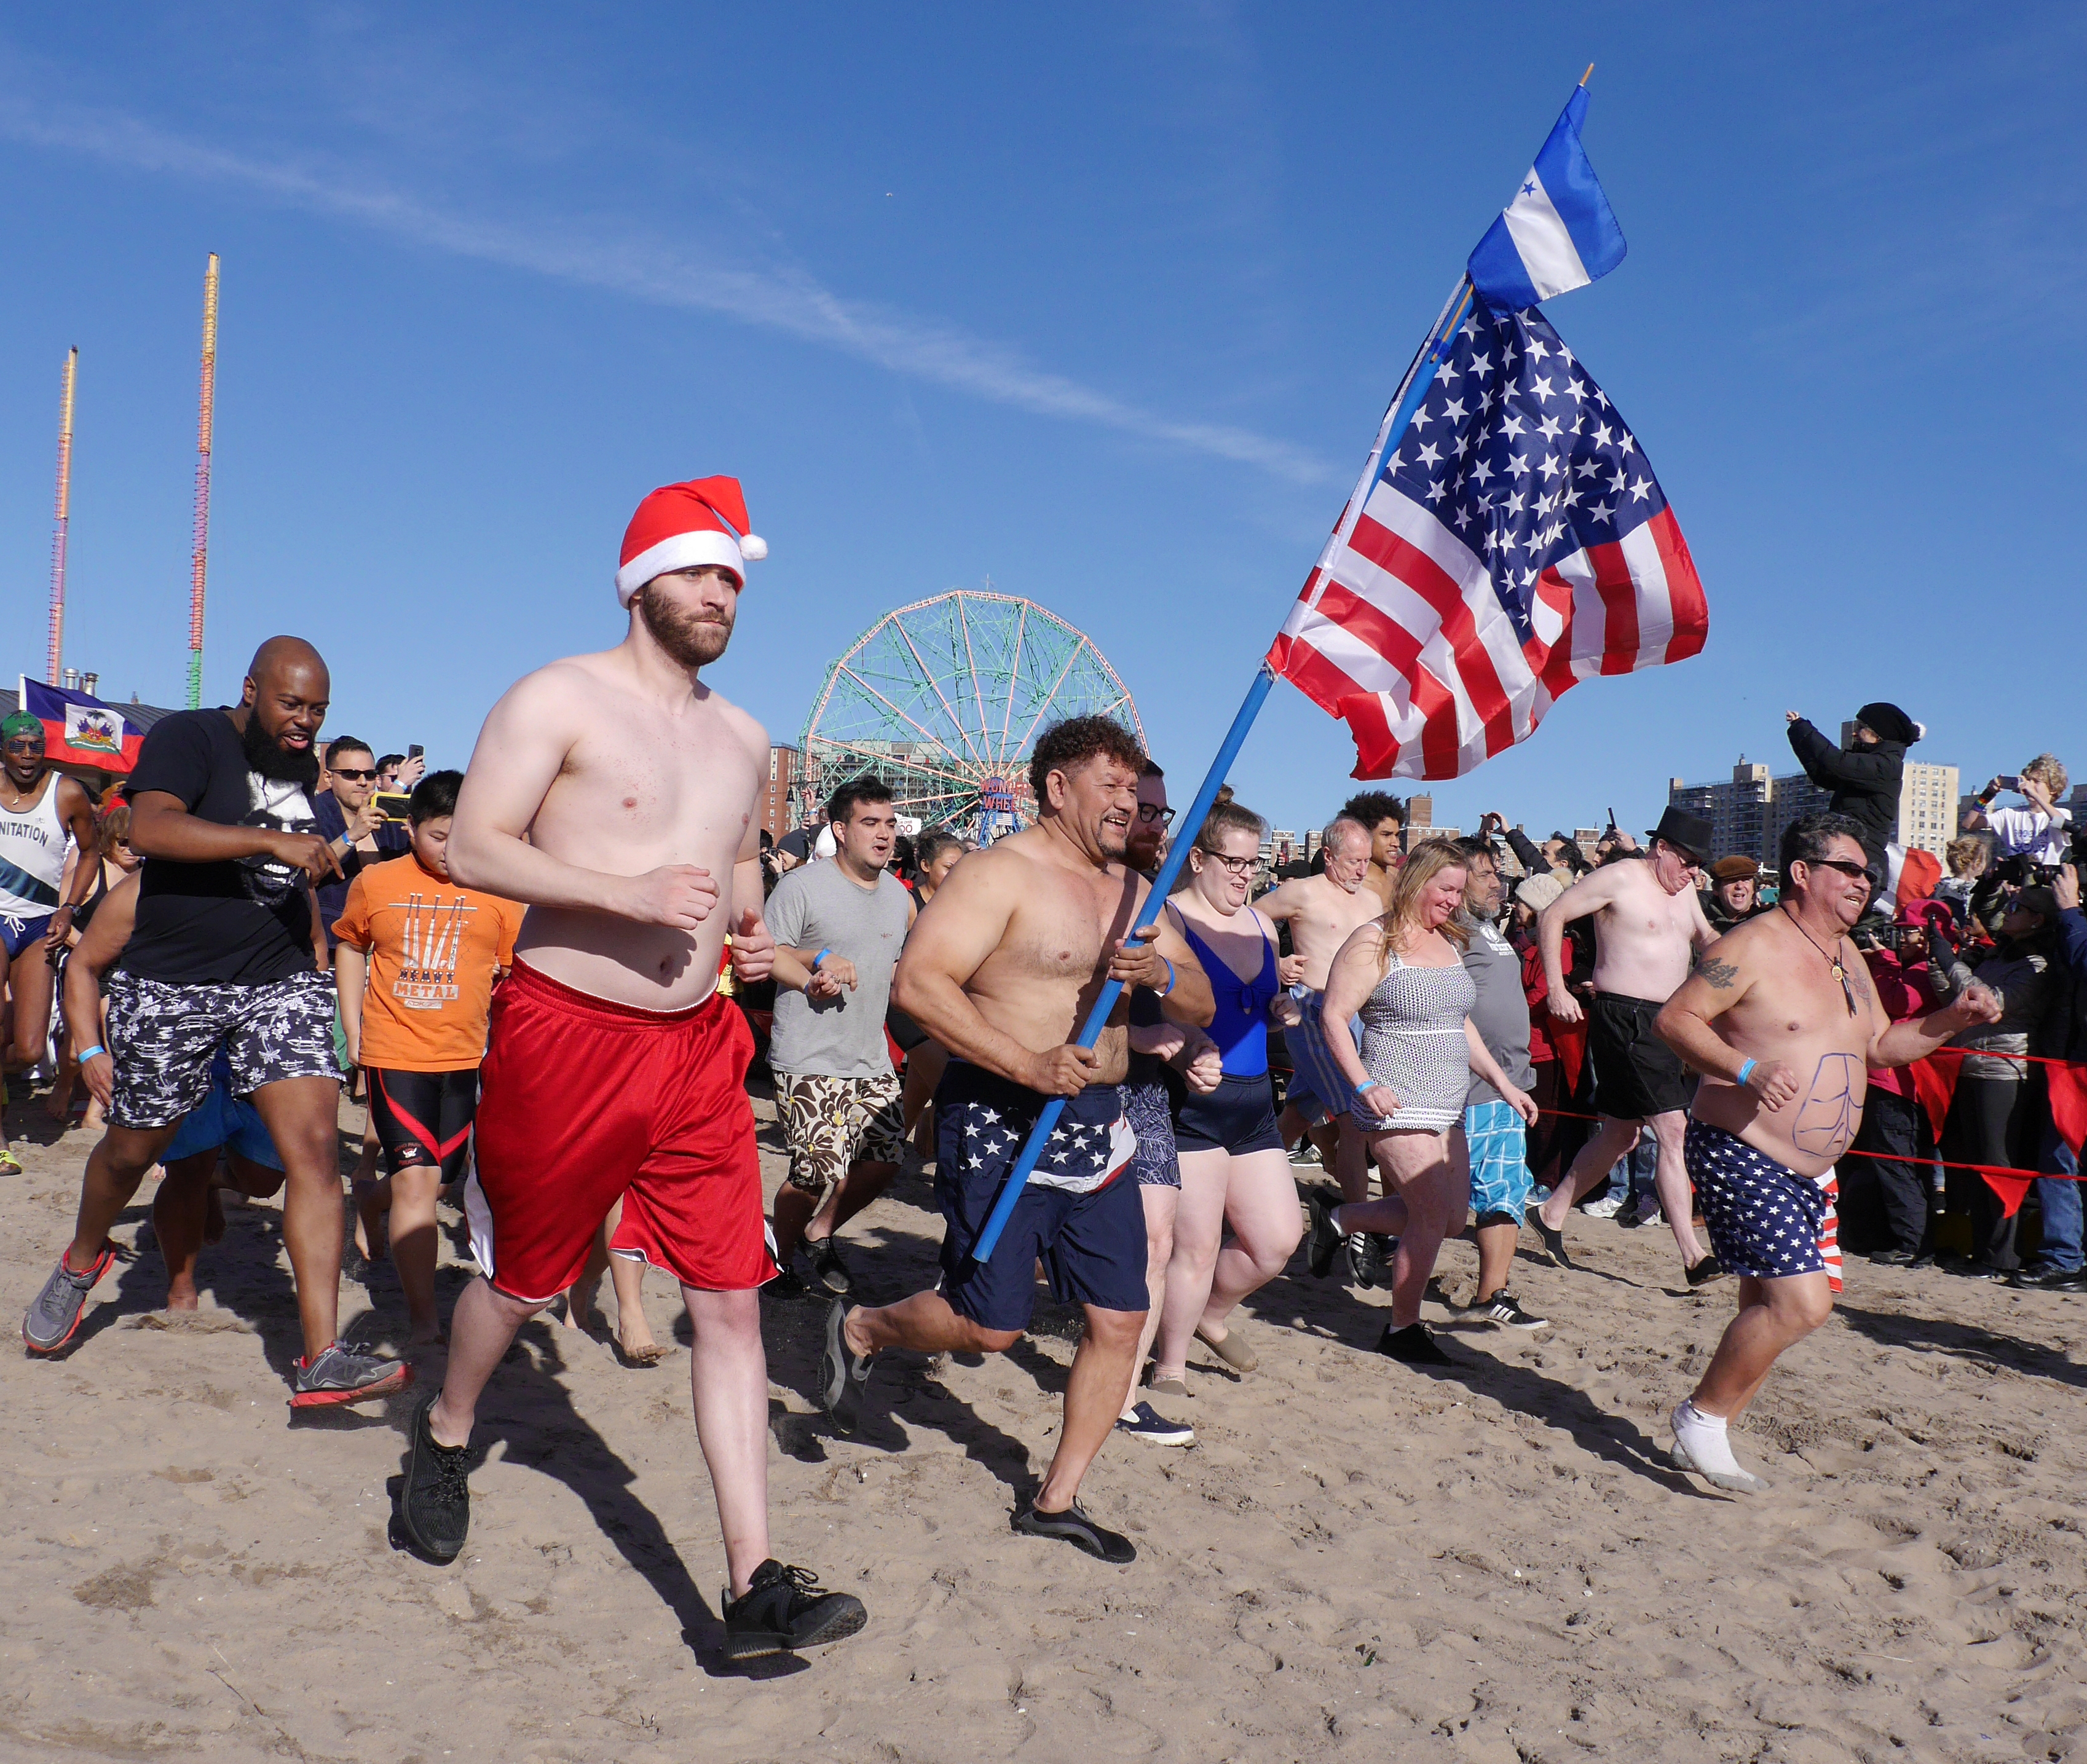 Roberto Velazquez proudly carries the American flag while attending the annual New Year's Day Polar Bear Plunge at Coney Island.